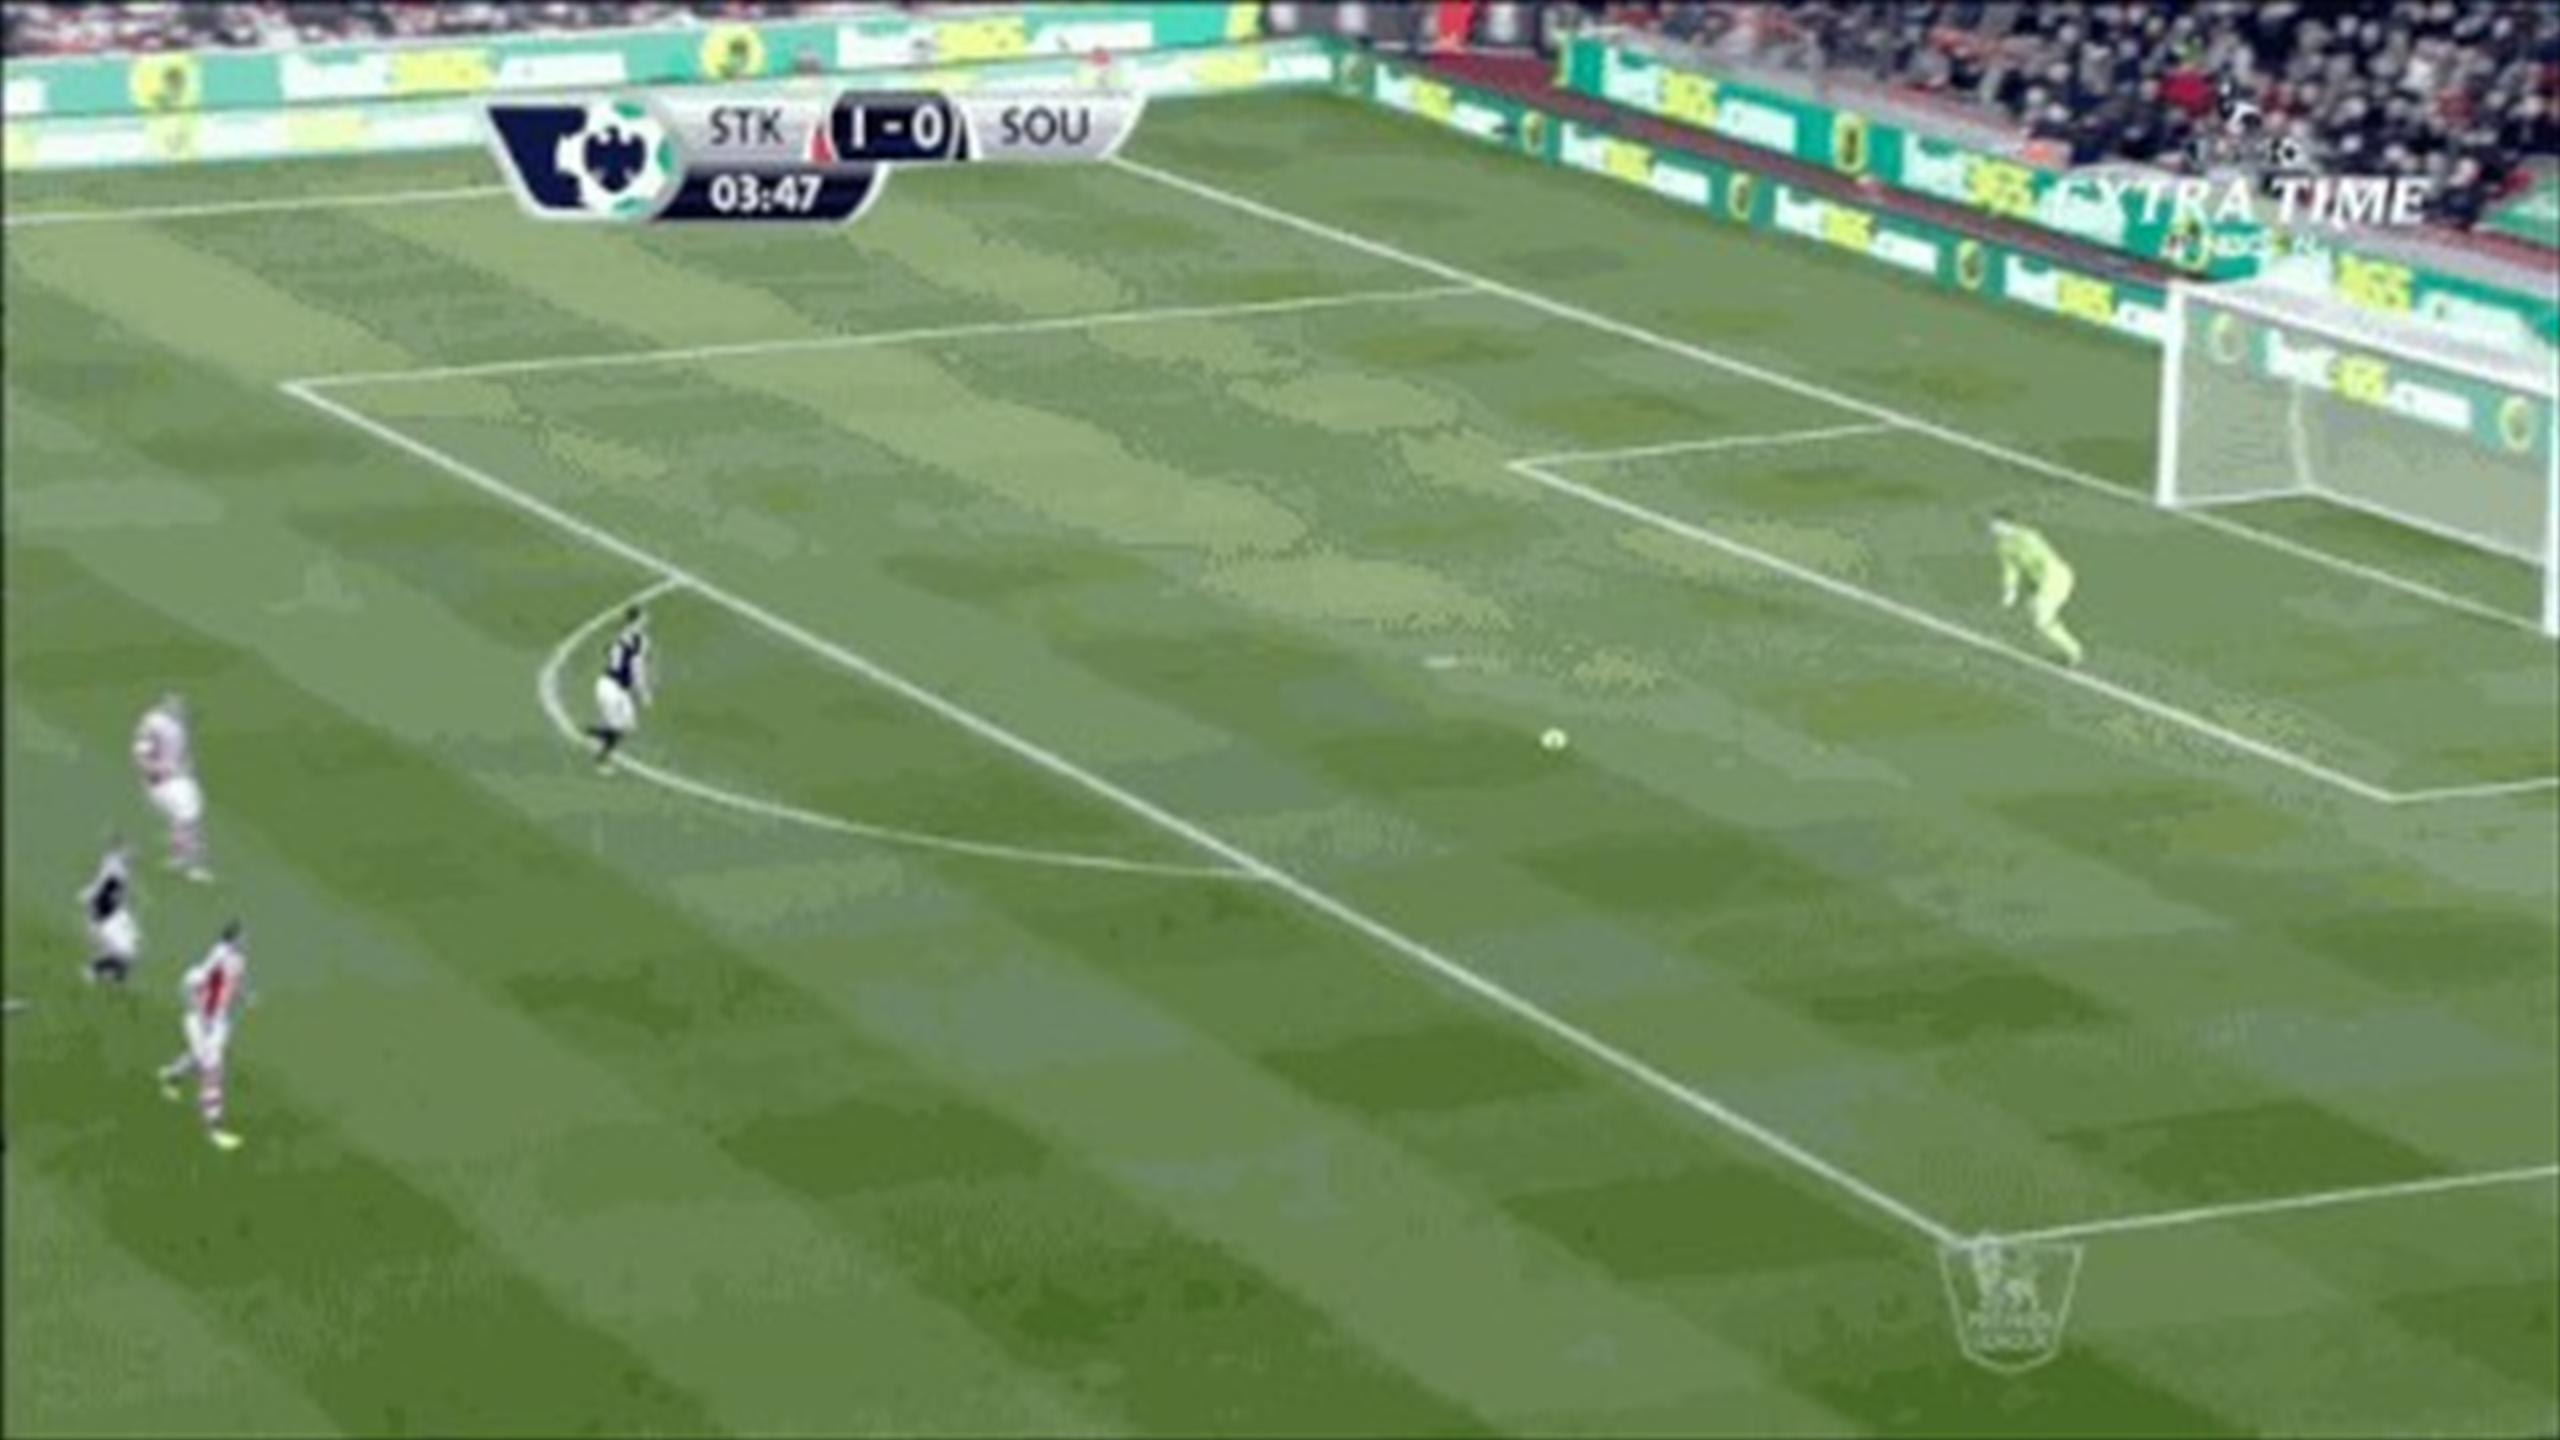 Premier League - Begovic credited with longest goal in history of football